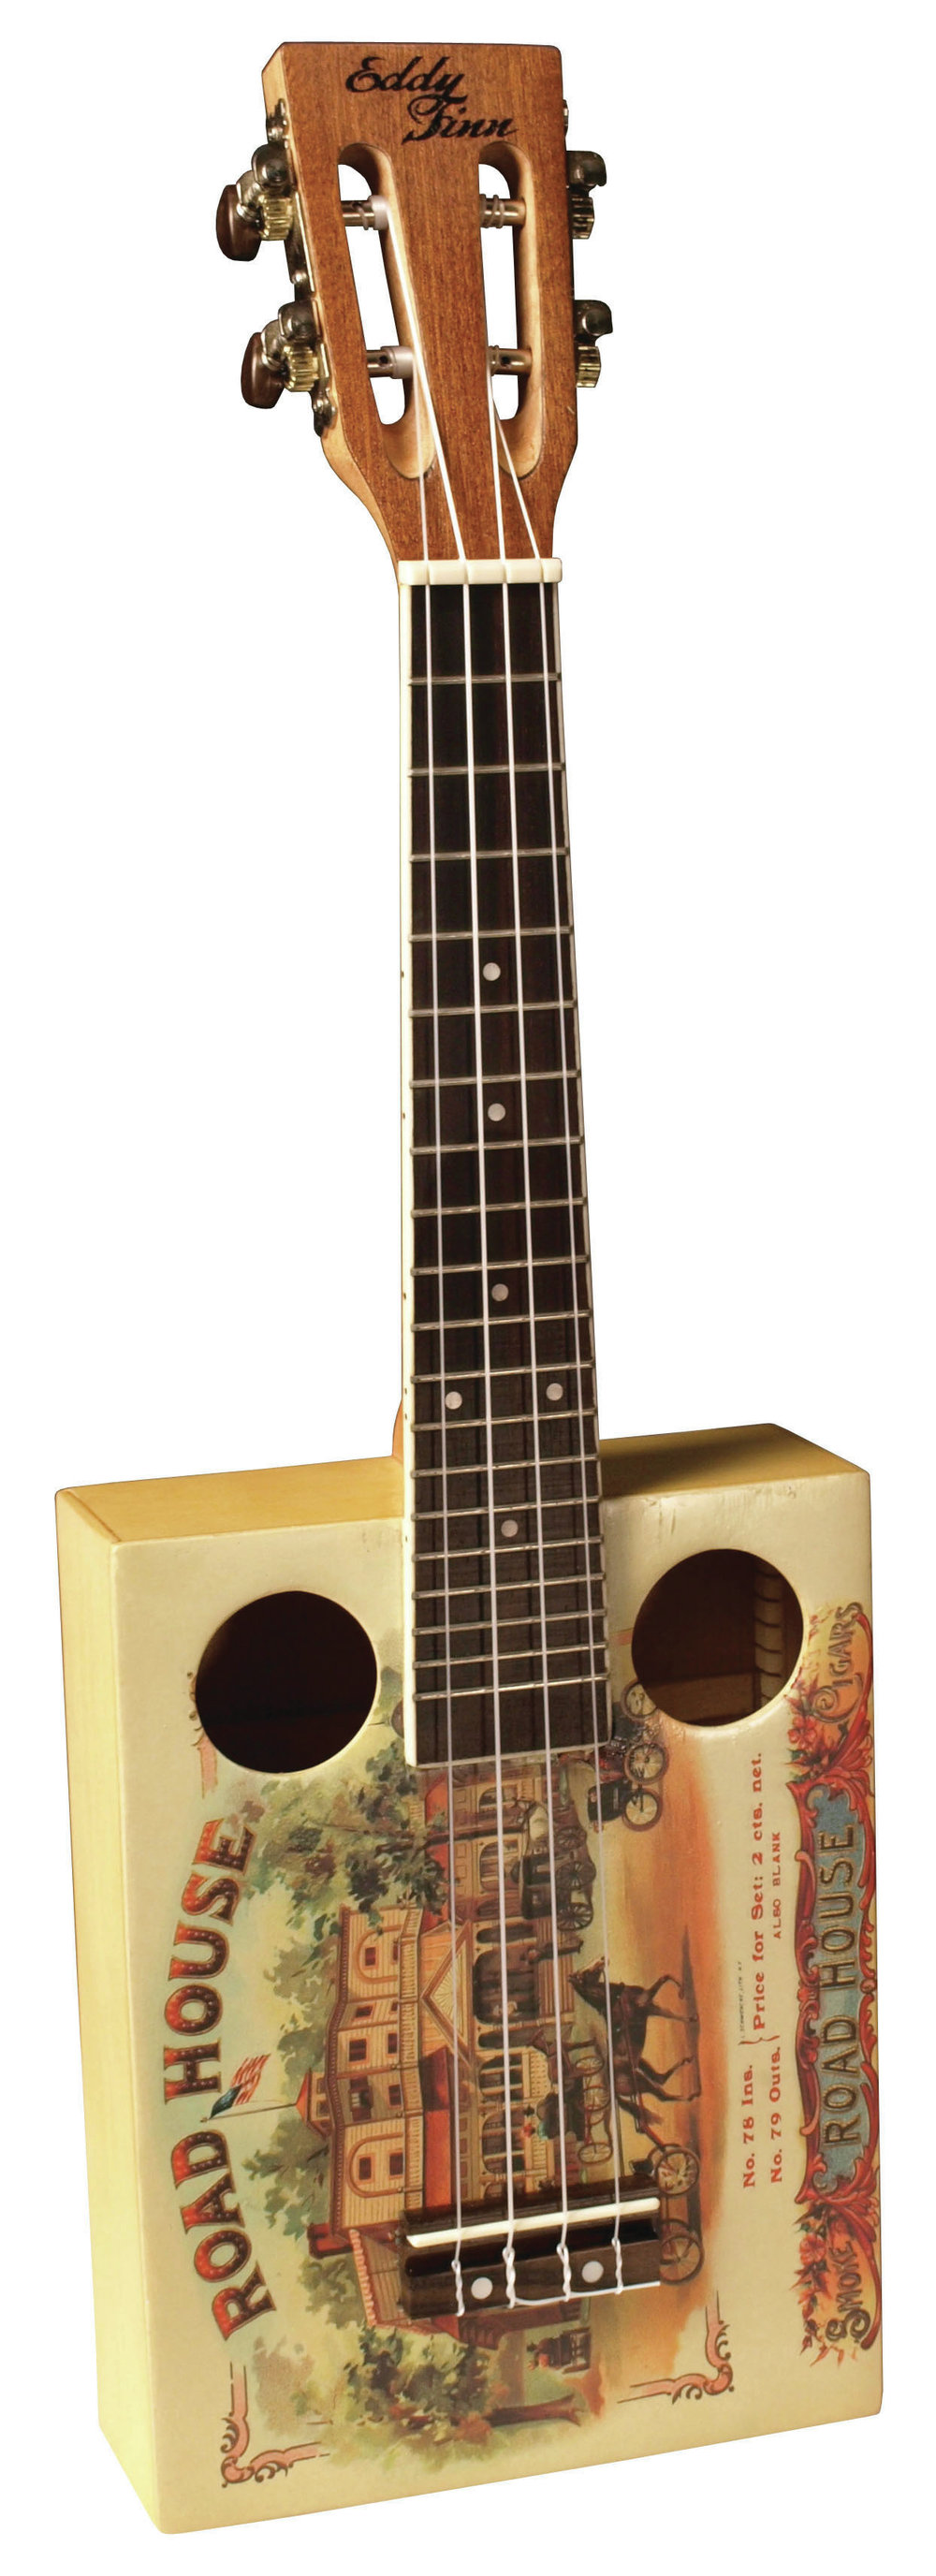 Eddy Finn Roadhouse Cigar Box Ukulele